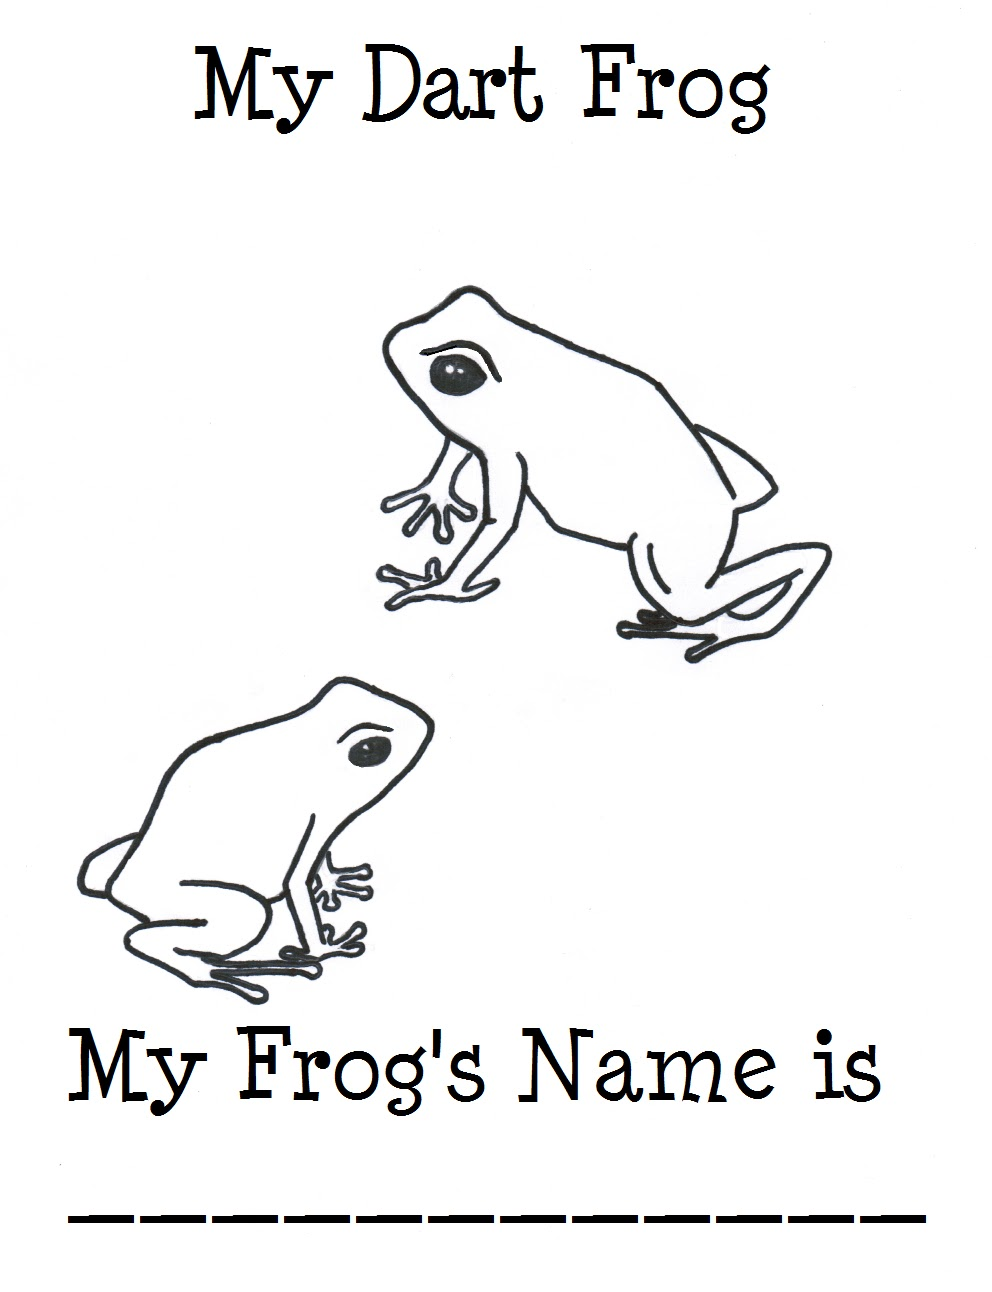 chuck does art coloring sheet poison dart frog